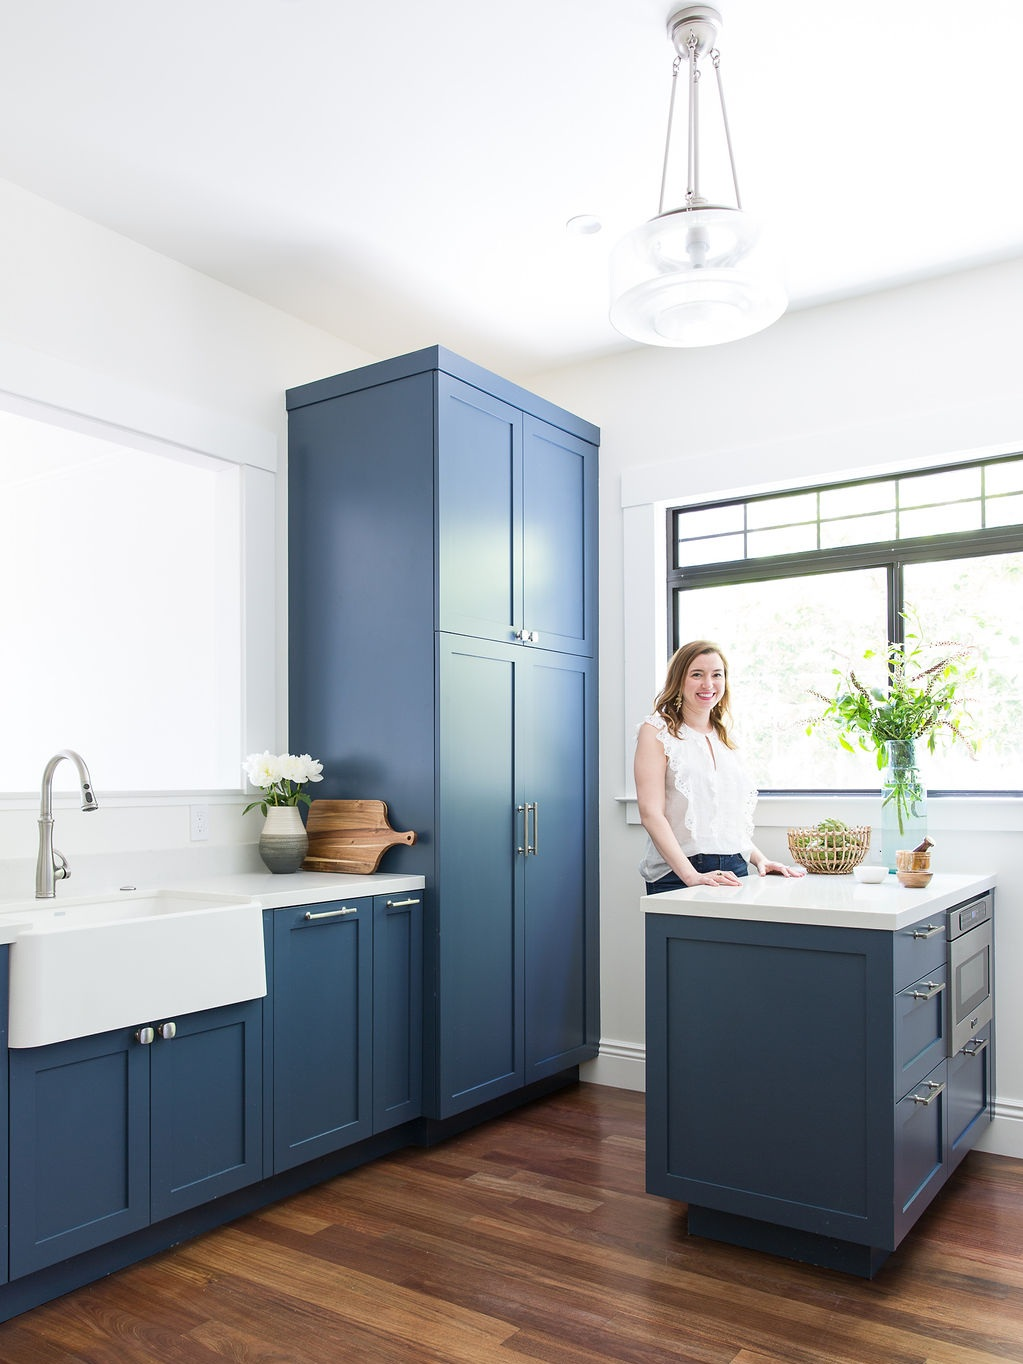 Love-%26-Interiors-San-Francisco-Pacific-Heights-Transitional-Blue-Kitchen-Built-in-Pantry-and-White-Farmhouse-Sink-With-Pendant-Light-And-Interior-Designer.jpg